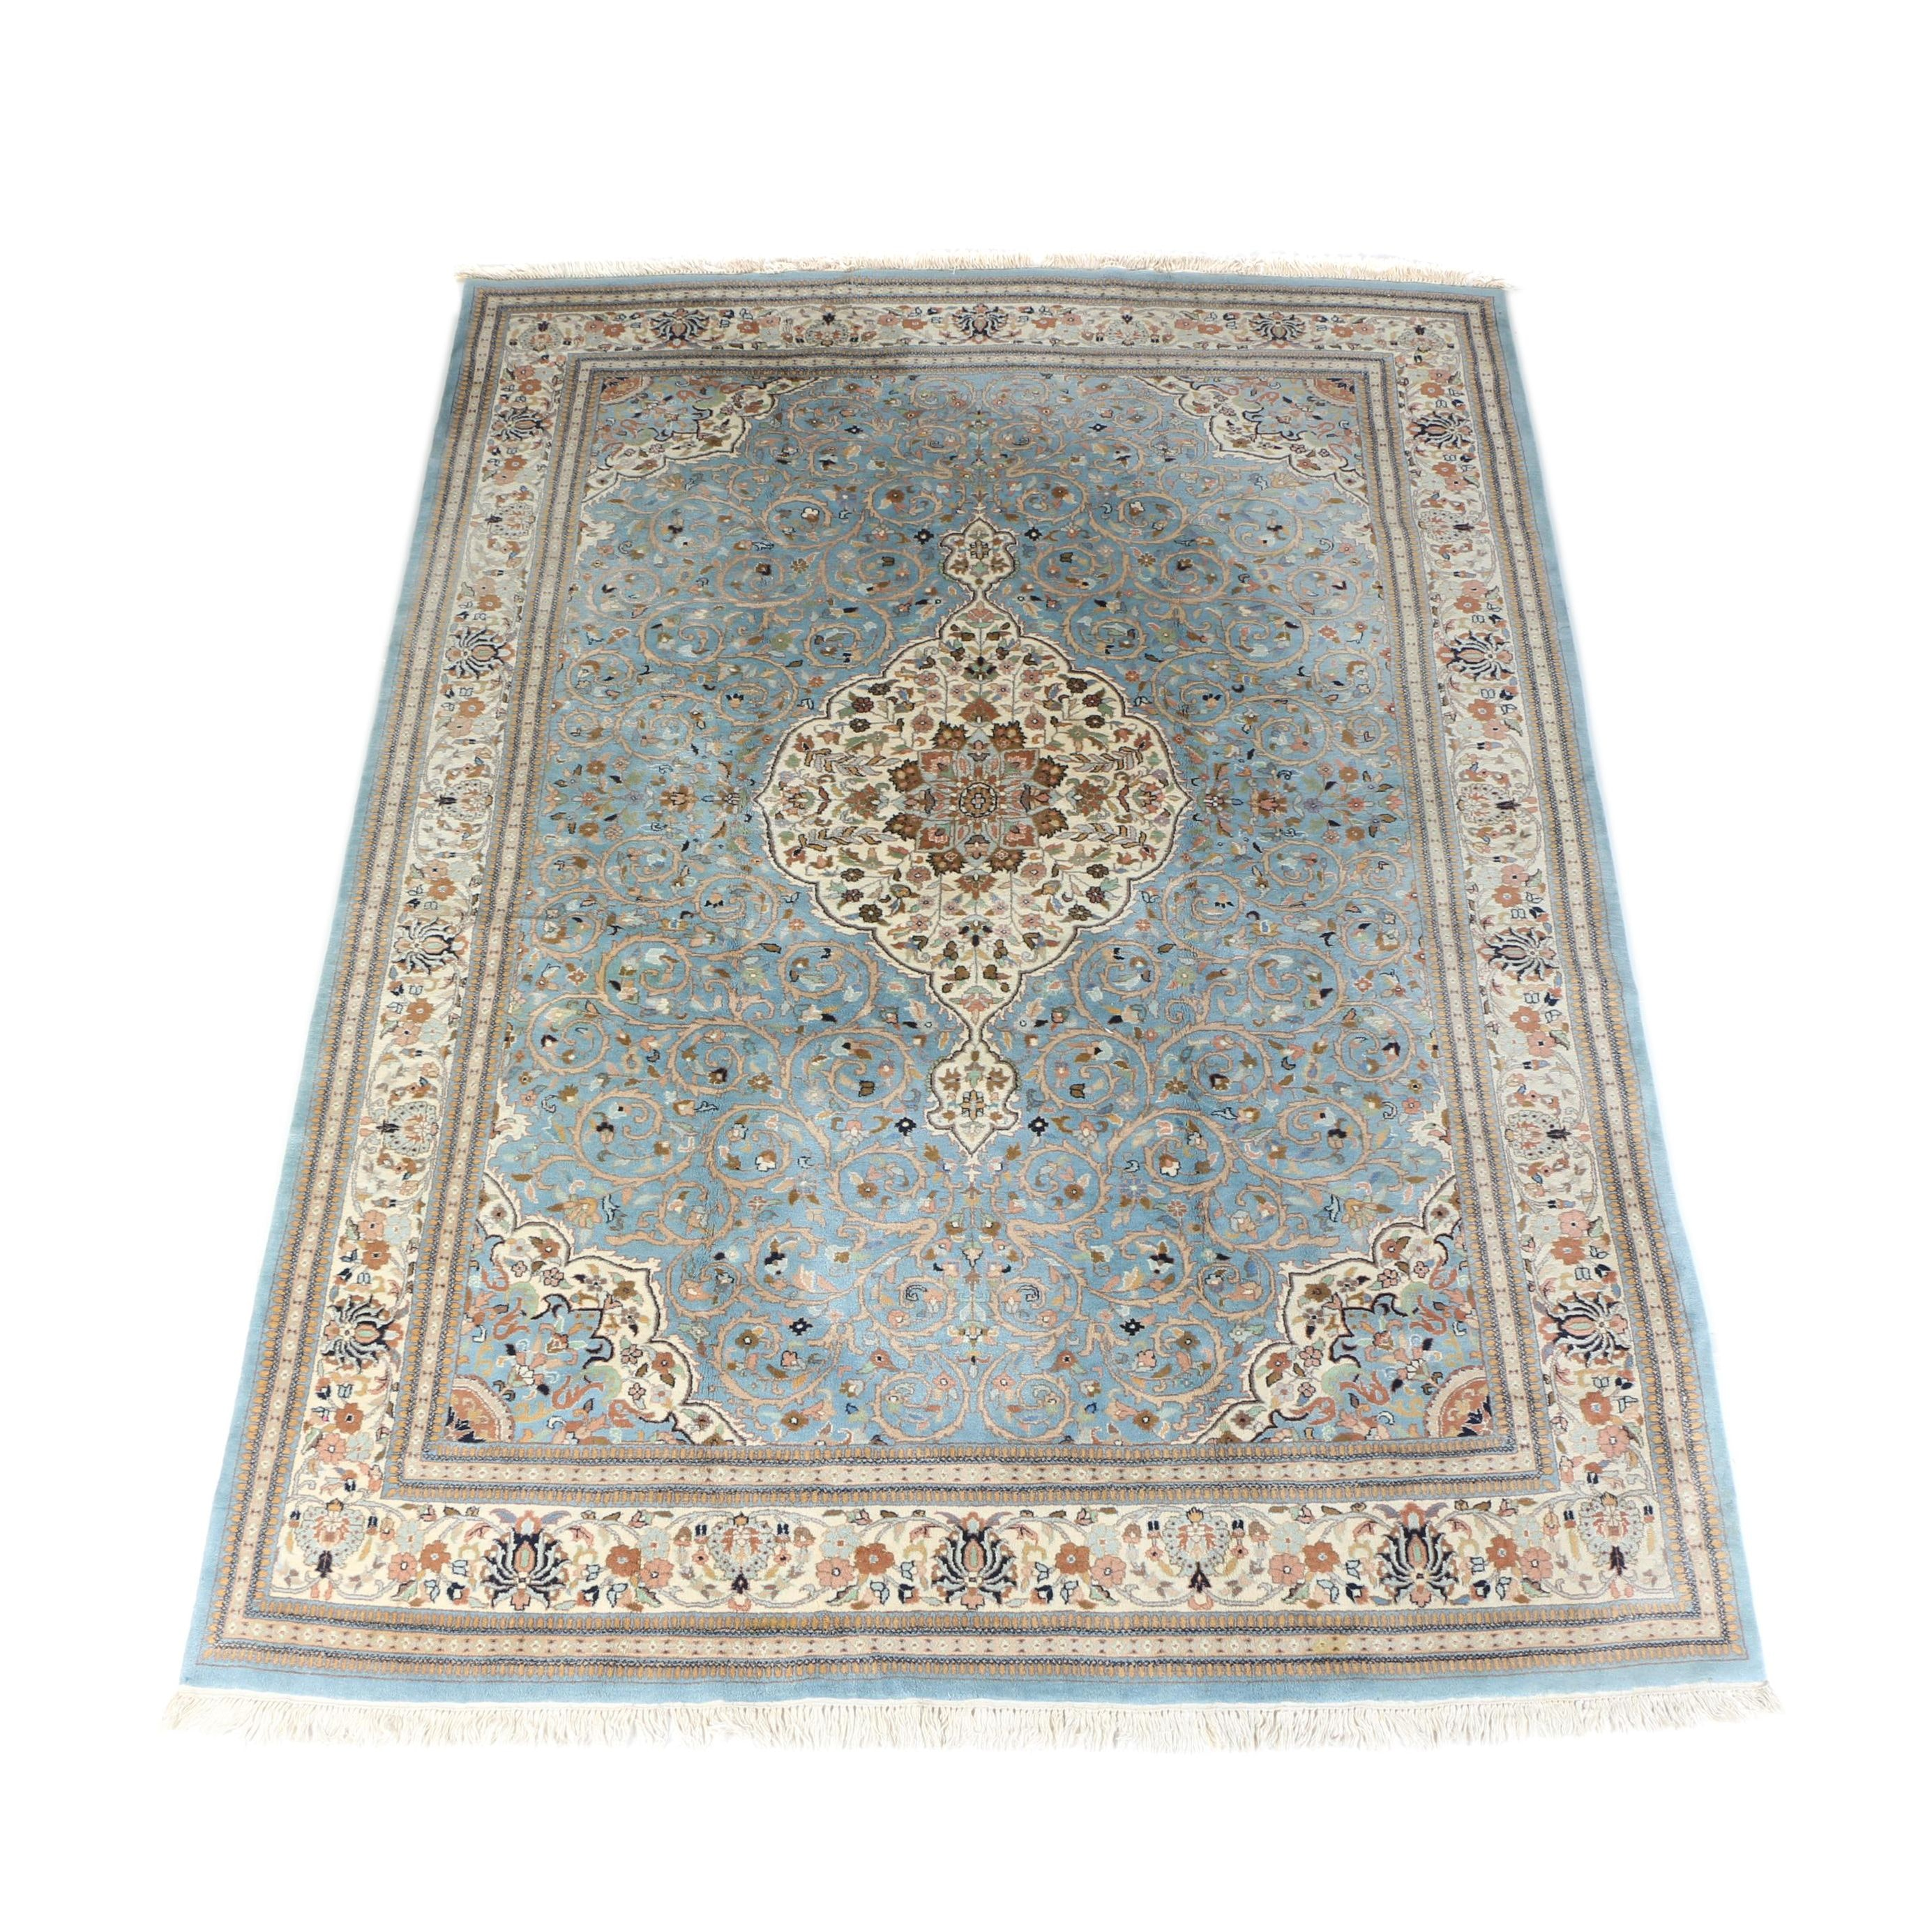 Hand-Knotted Sino-Persian Wool Area Rug